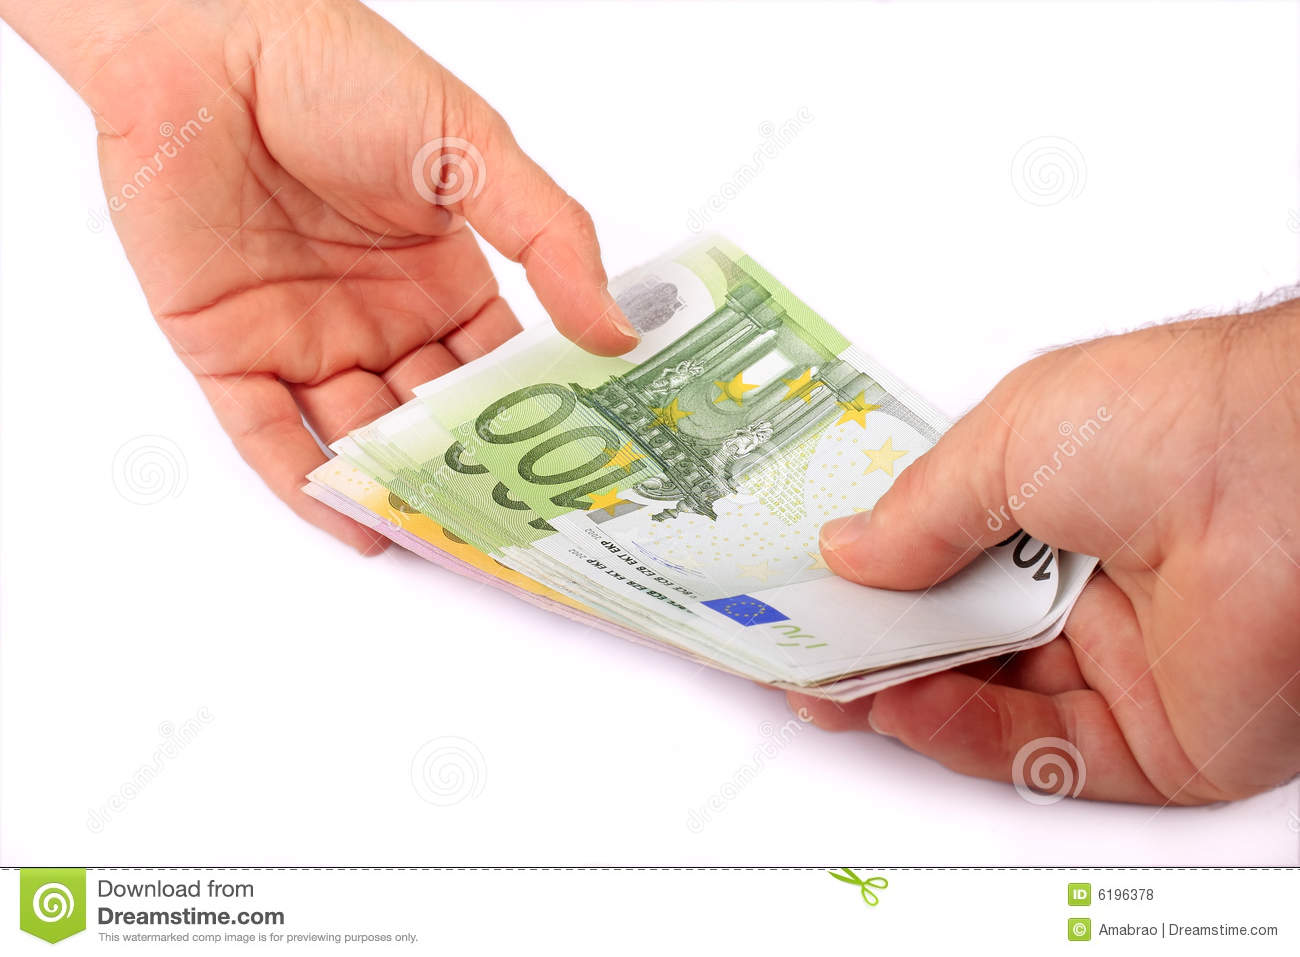 Money Transfer Stock Photo Image Of Money, Bill, Business. Tax Relief Act Of 2001 Proteasome Inhibitor. Mazda Cx 5 Vs Ford Escape Hard Drive Disposal. Coolsculpting How Much Does It Cost. What Is A S Corporation French Simple Phrases. Edison State College Nursing. Small Business Loans Va Chapter 7 Bankruptcy. User Experience Testing Tower Loan Hammond La. Certification In Information Technology